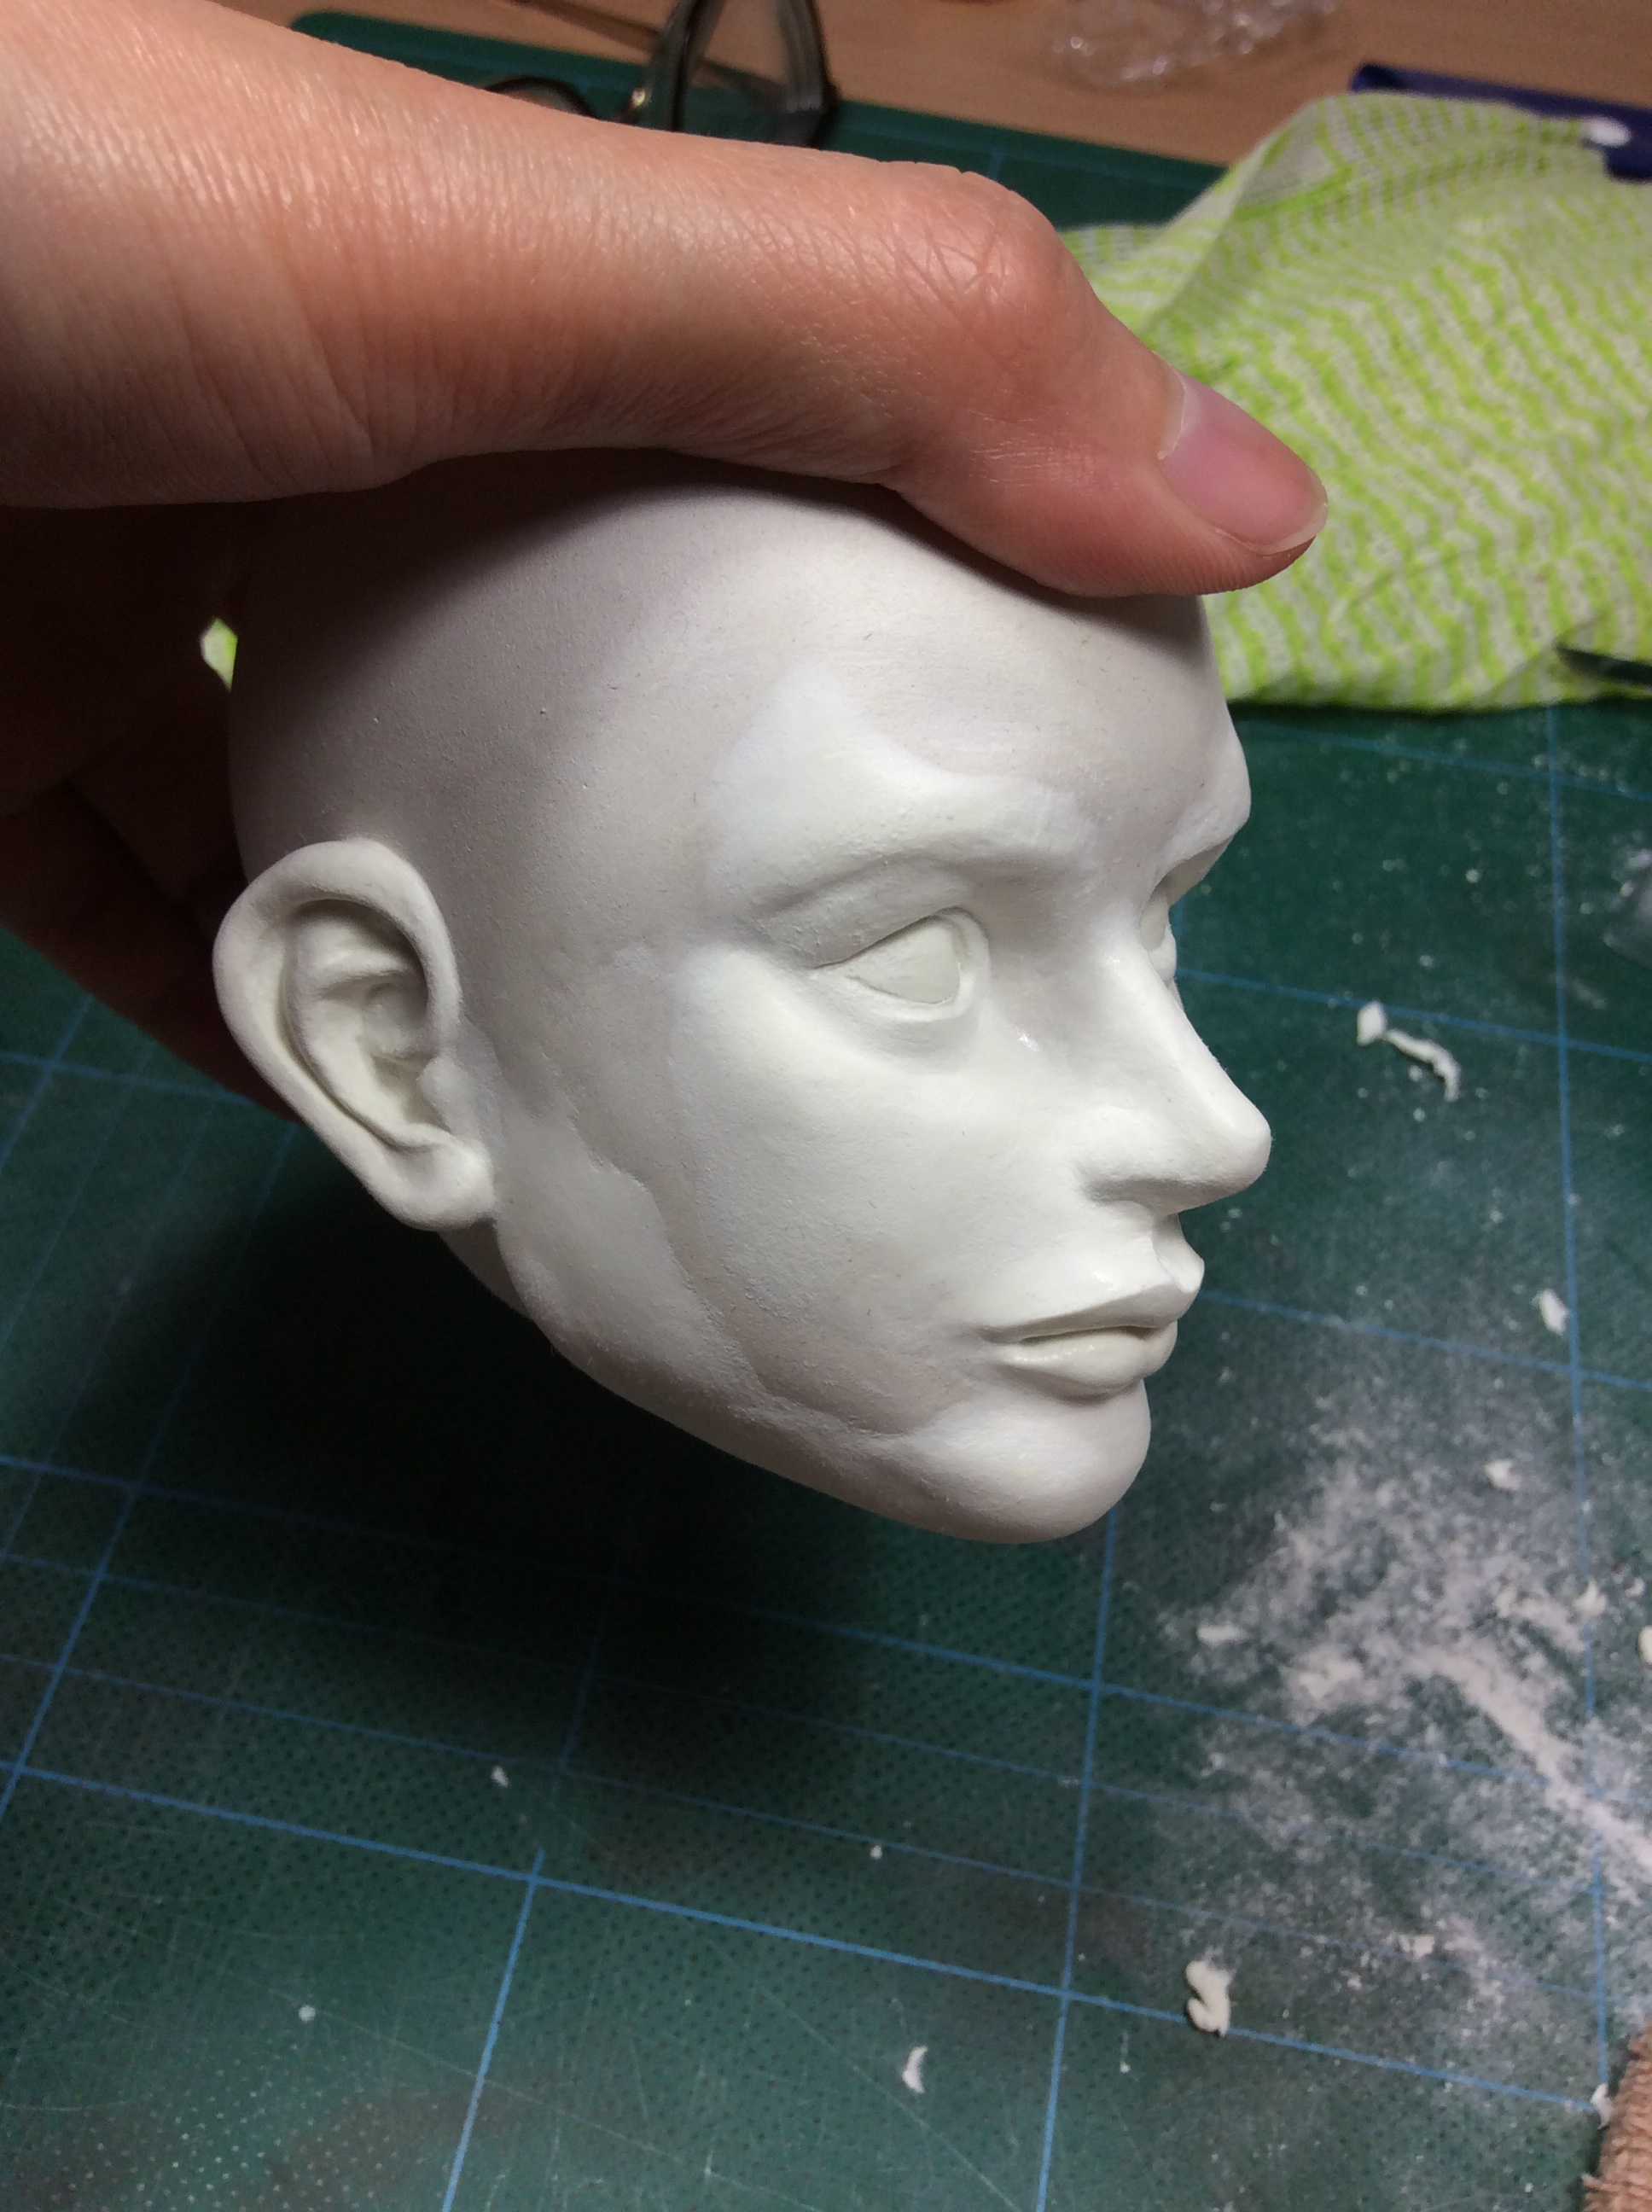 jemse---my-first-doll-head-making-progress-diary-part-3_32293330191_o